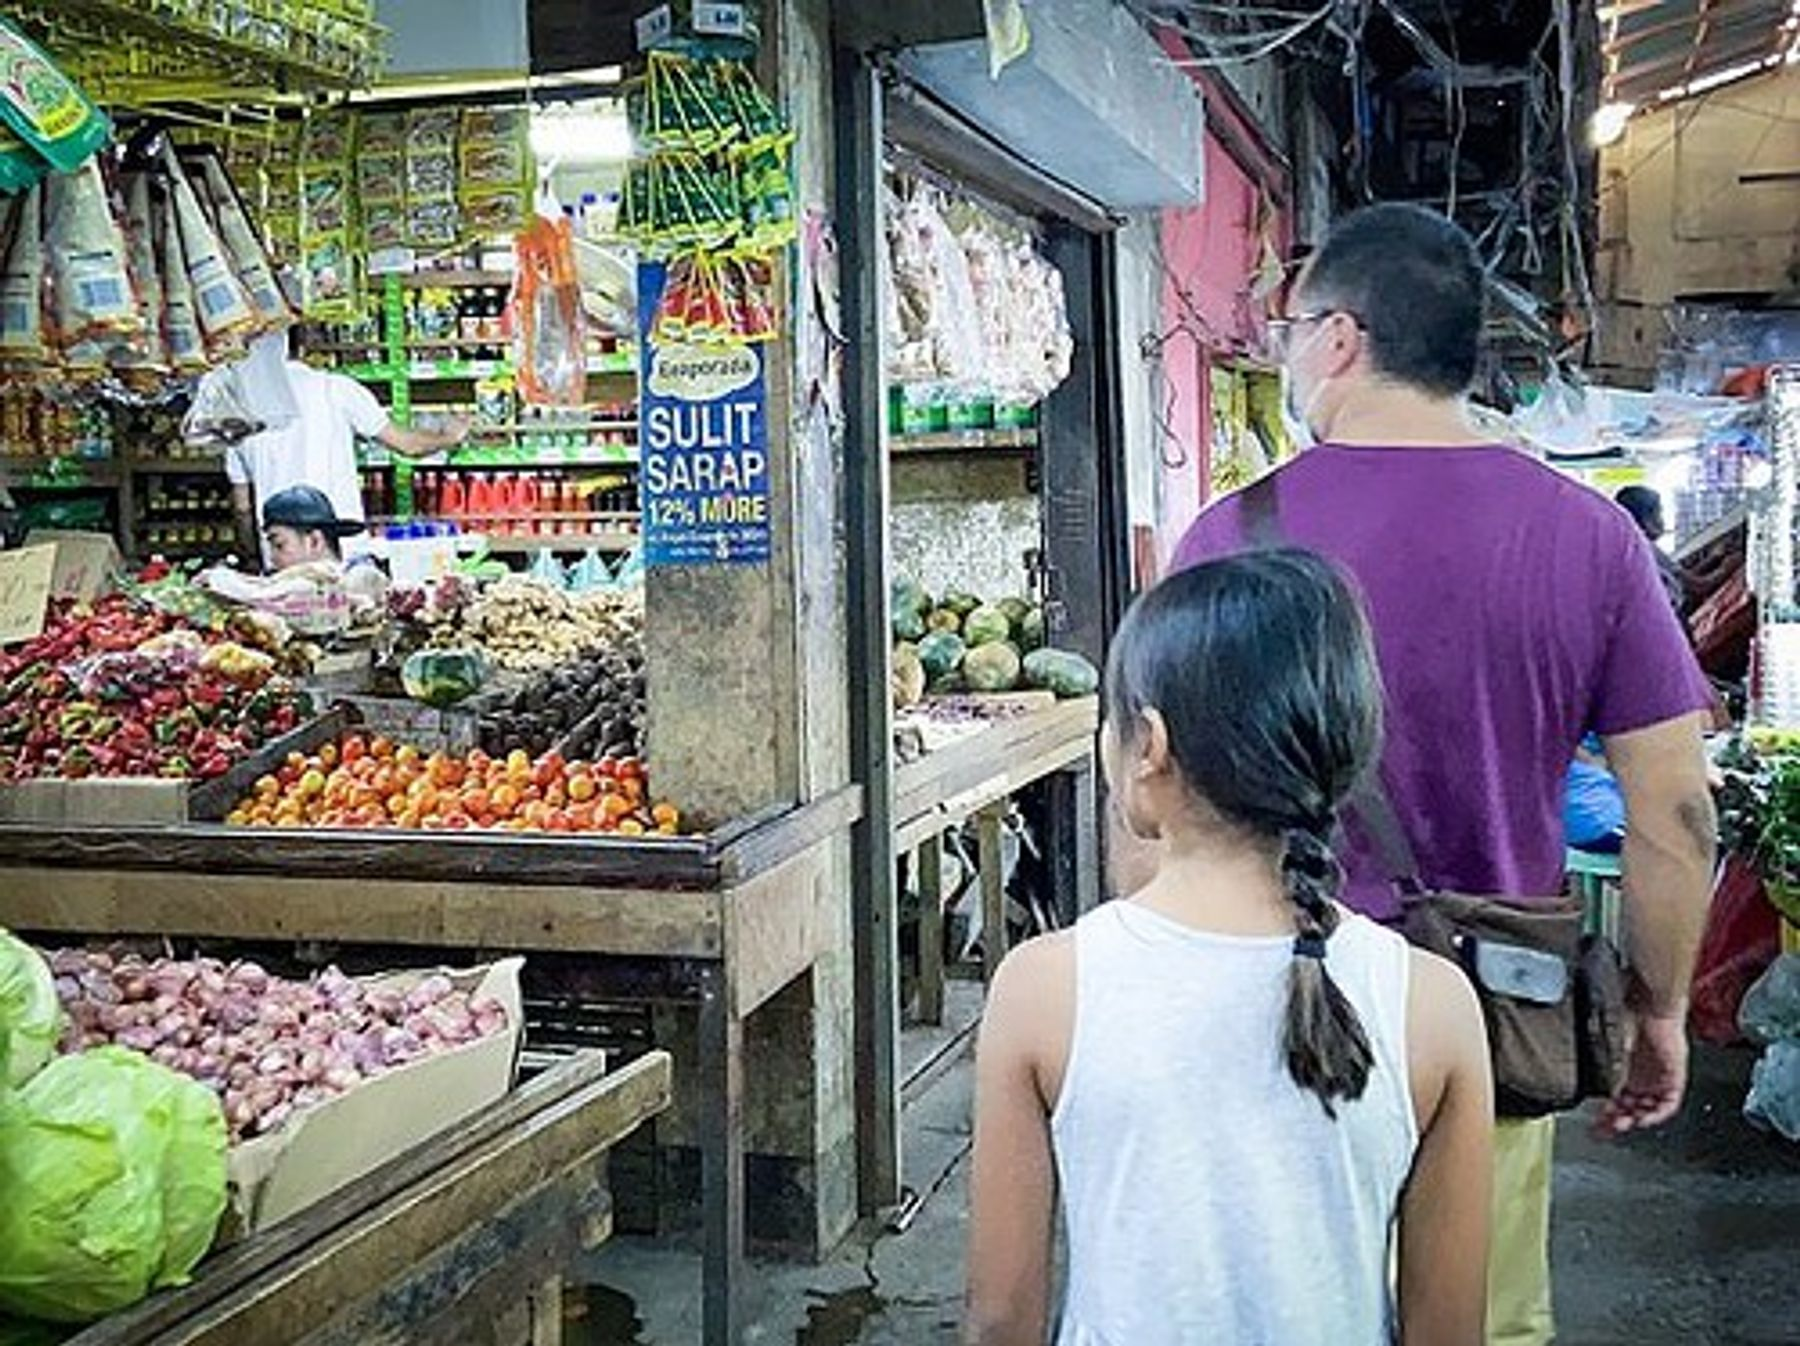 Walking through a market in Puerto Princesa, Philippines (February 2020)